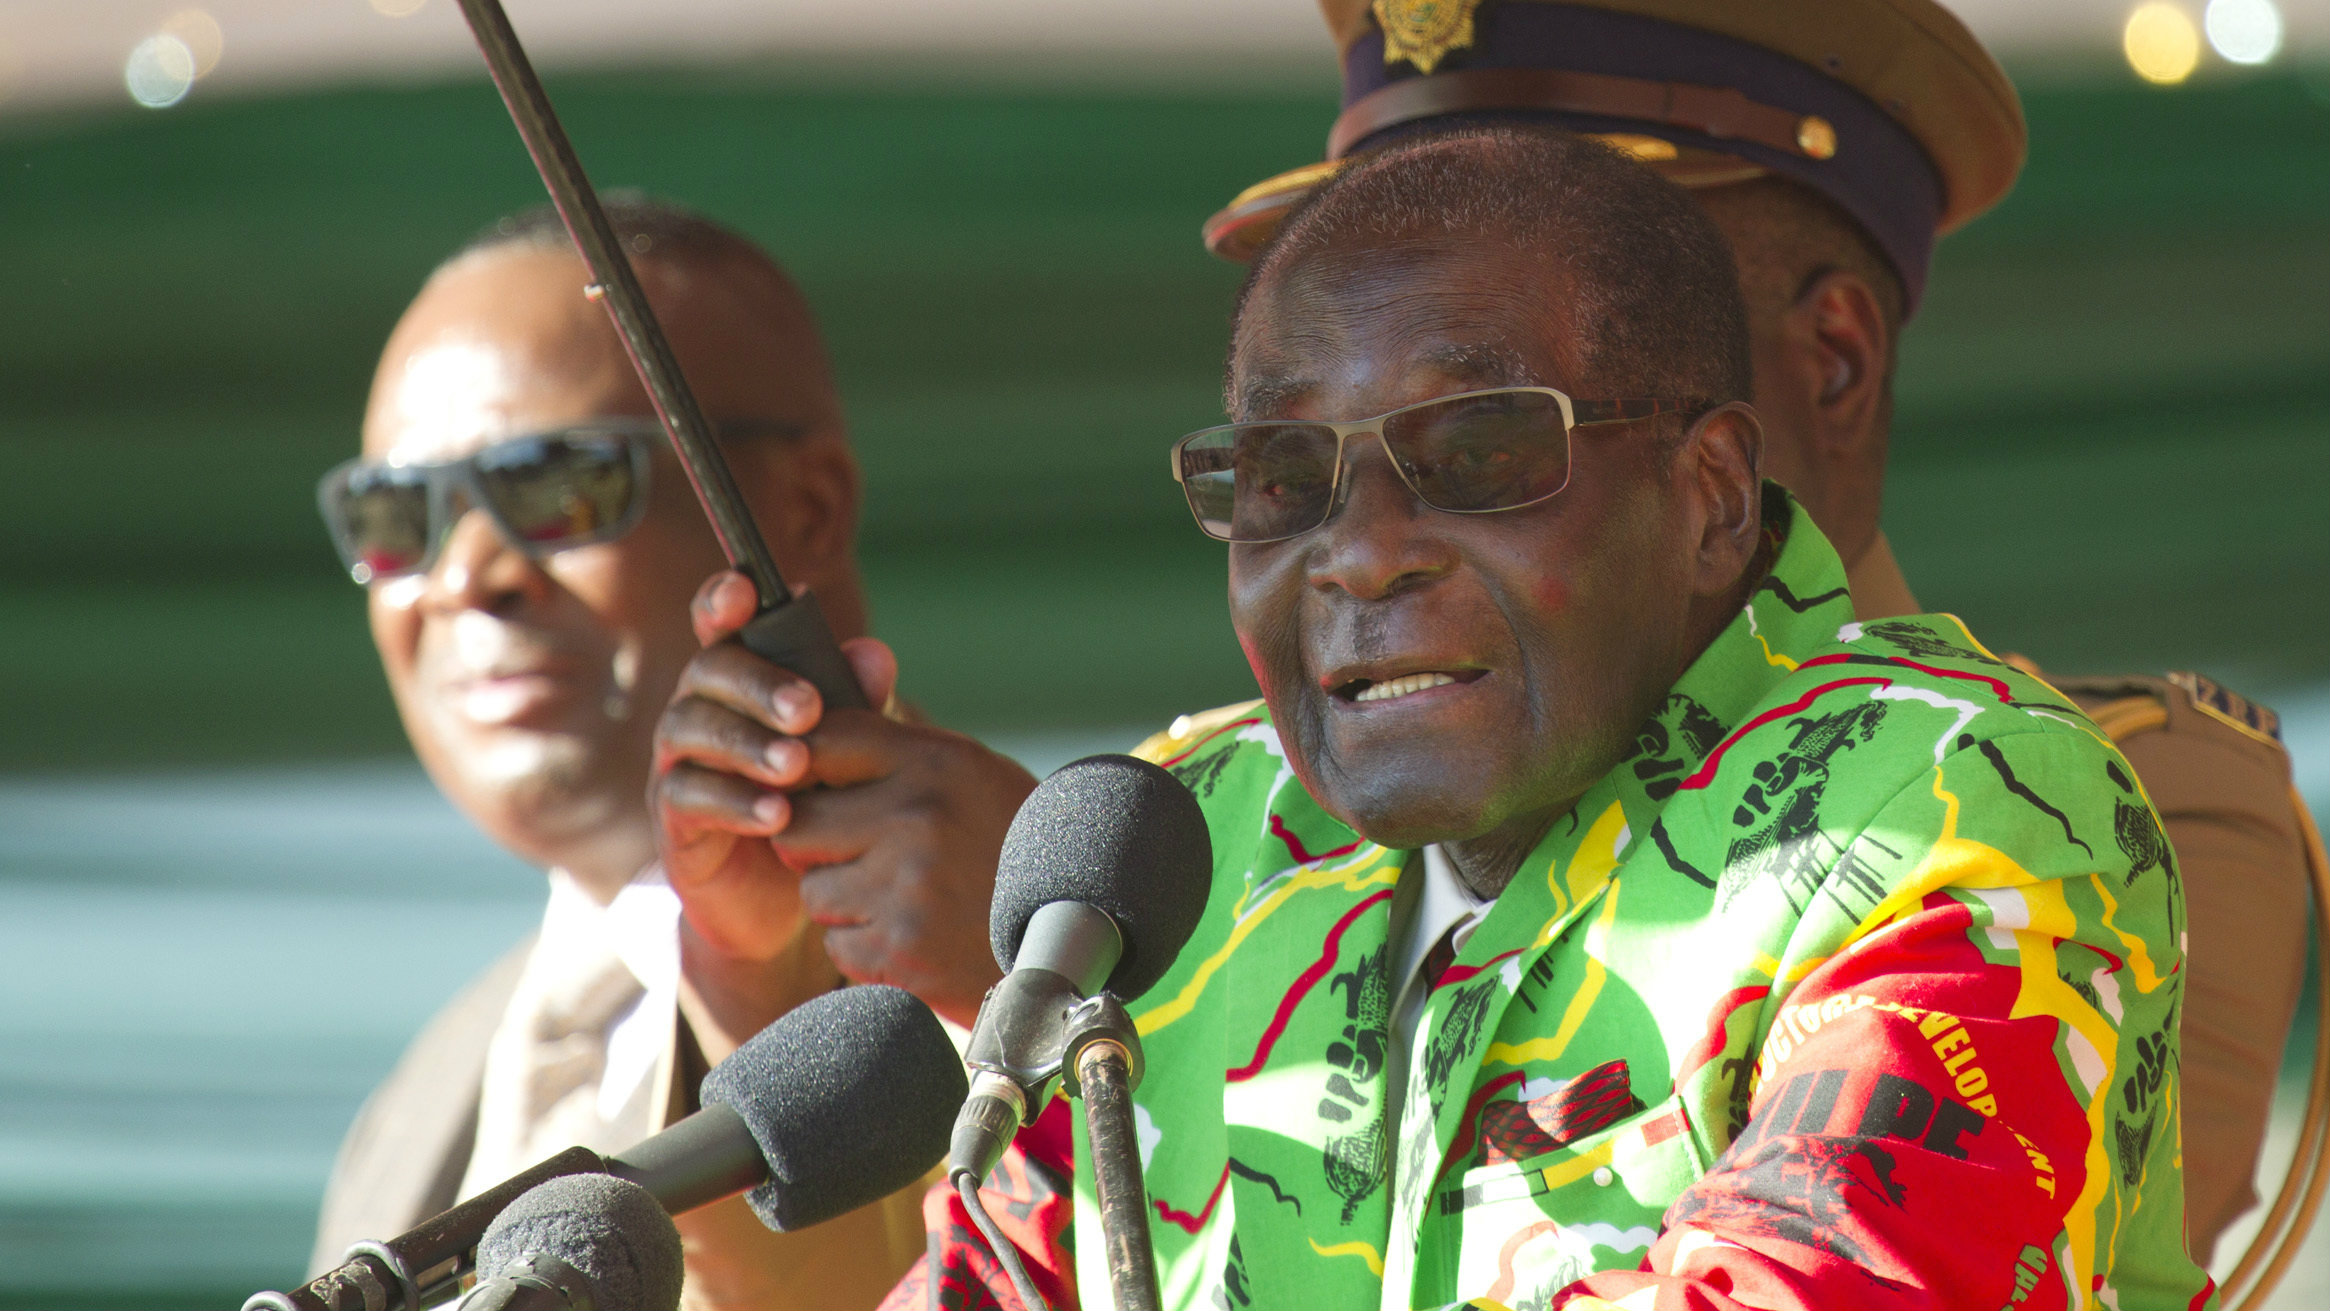 Zimbabwean President Robert Mugabe addresses a youth rally in Marondera about 100 kilometres east of Harare, Friday, June, 2, 2017. The rally was held as part of his 2017 Presidential election campaign bid where the youth declared Mugabe as the sole candidate and life President of the Southern African nation.